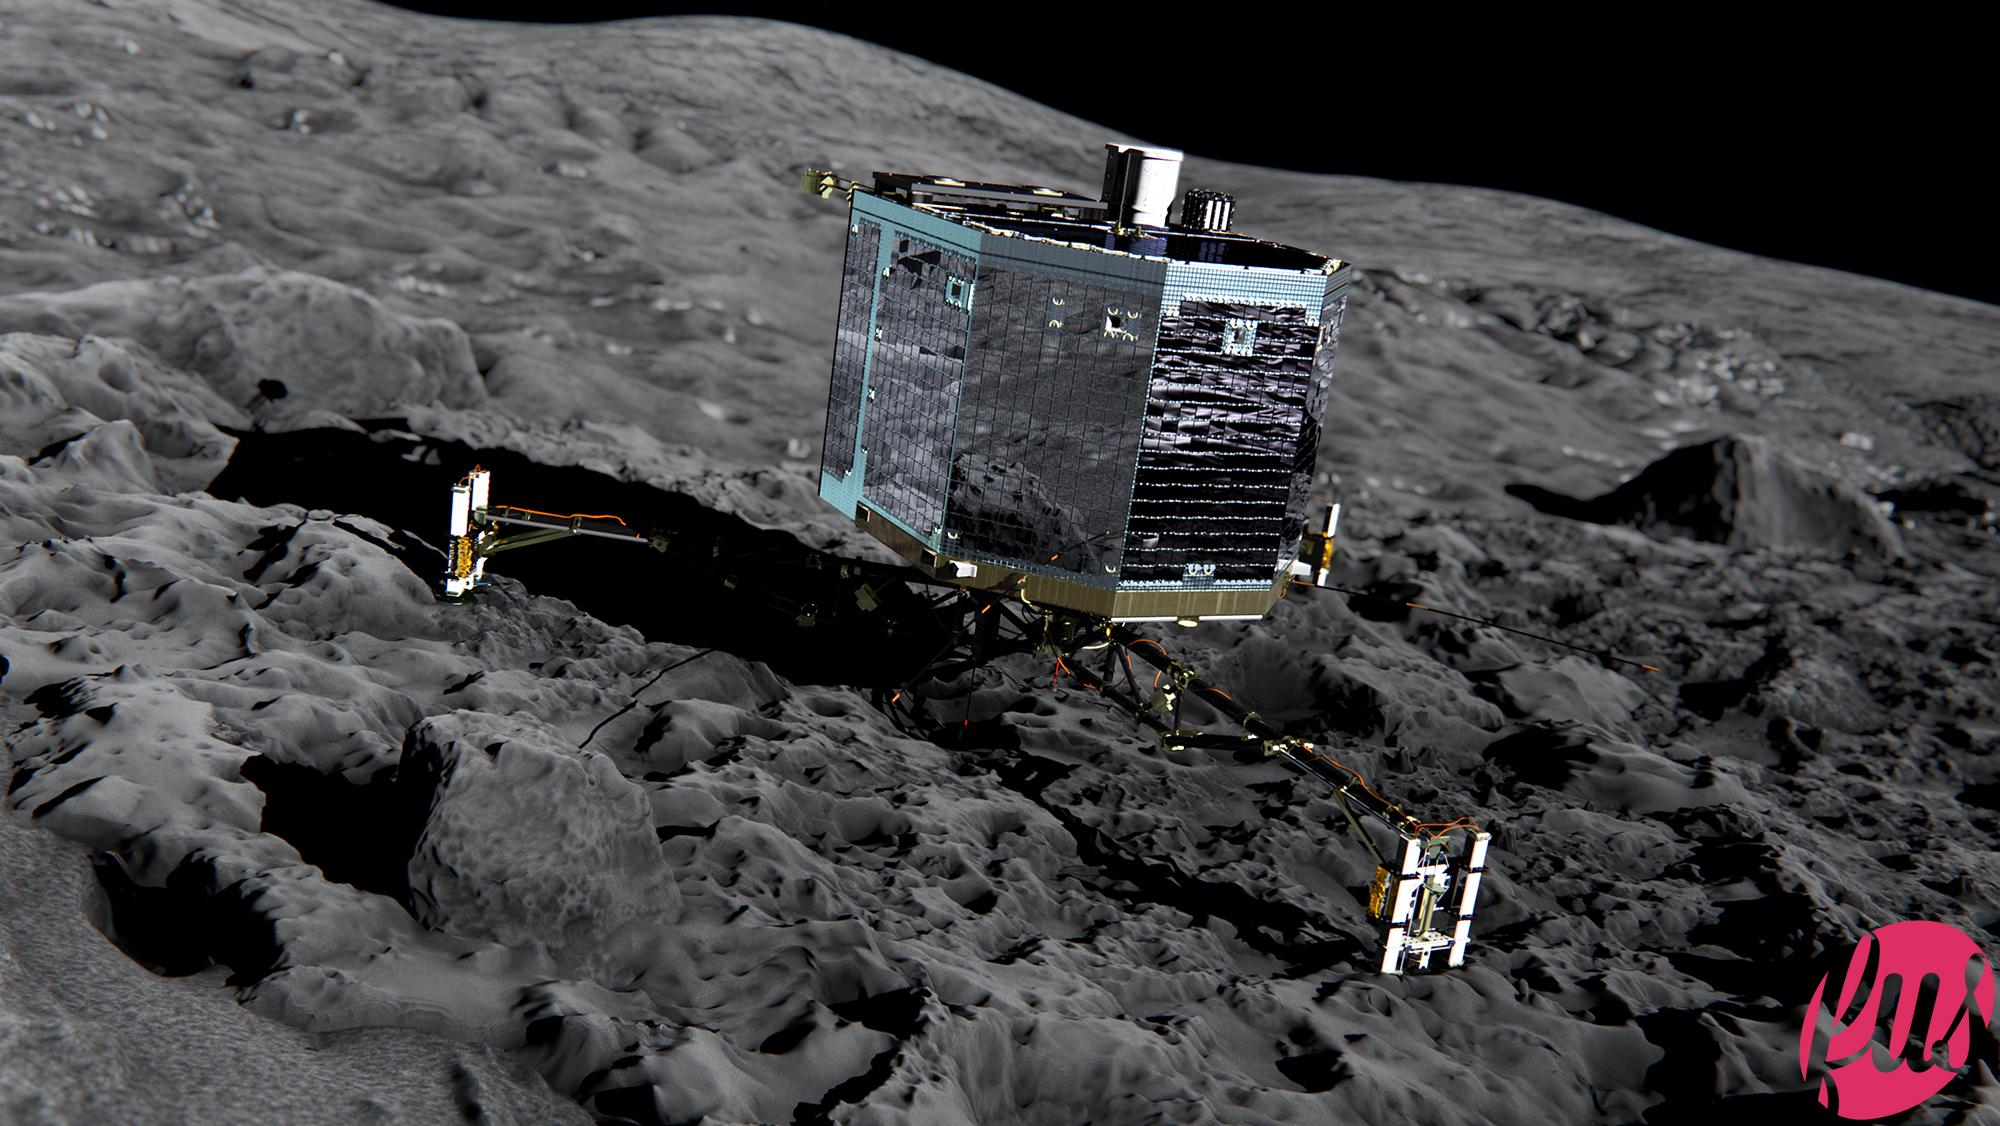 20140106_Philae_on_the_comet_front_view_2k1